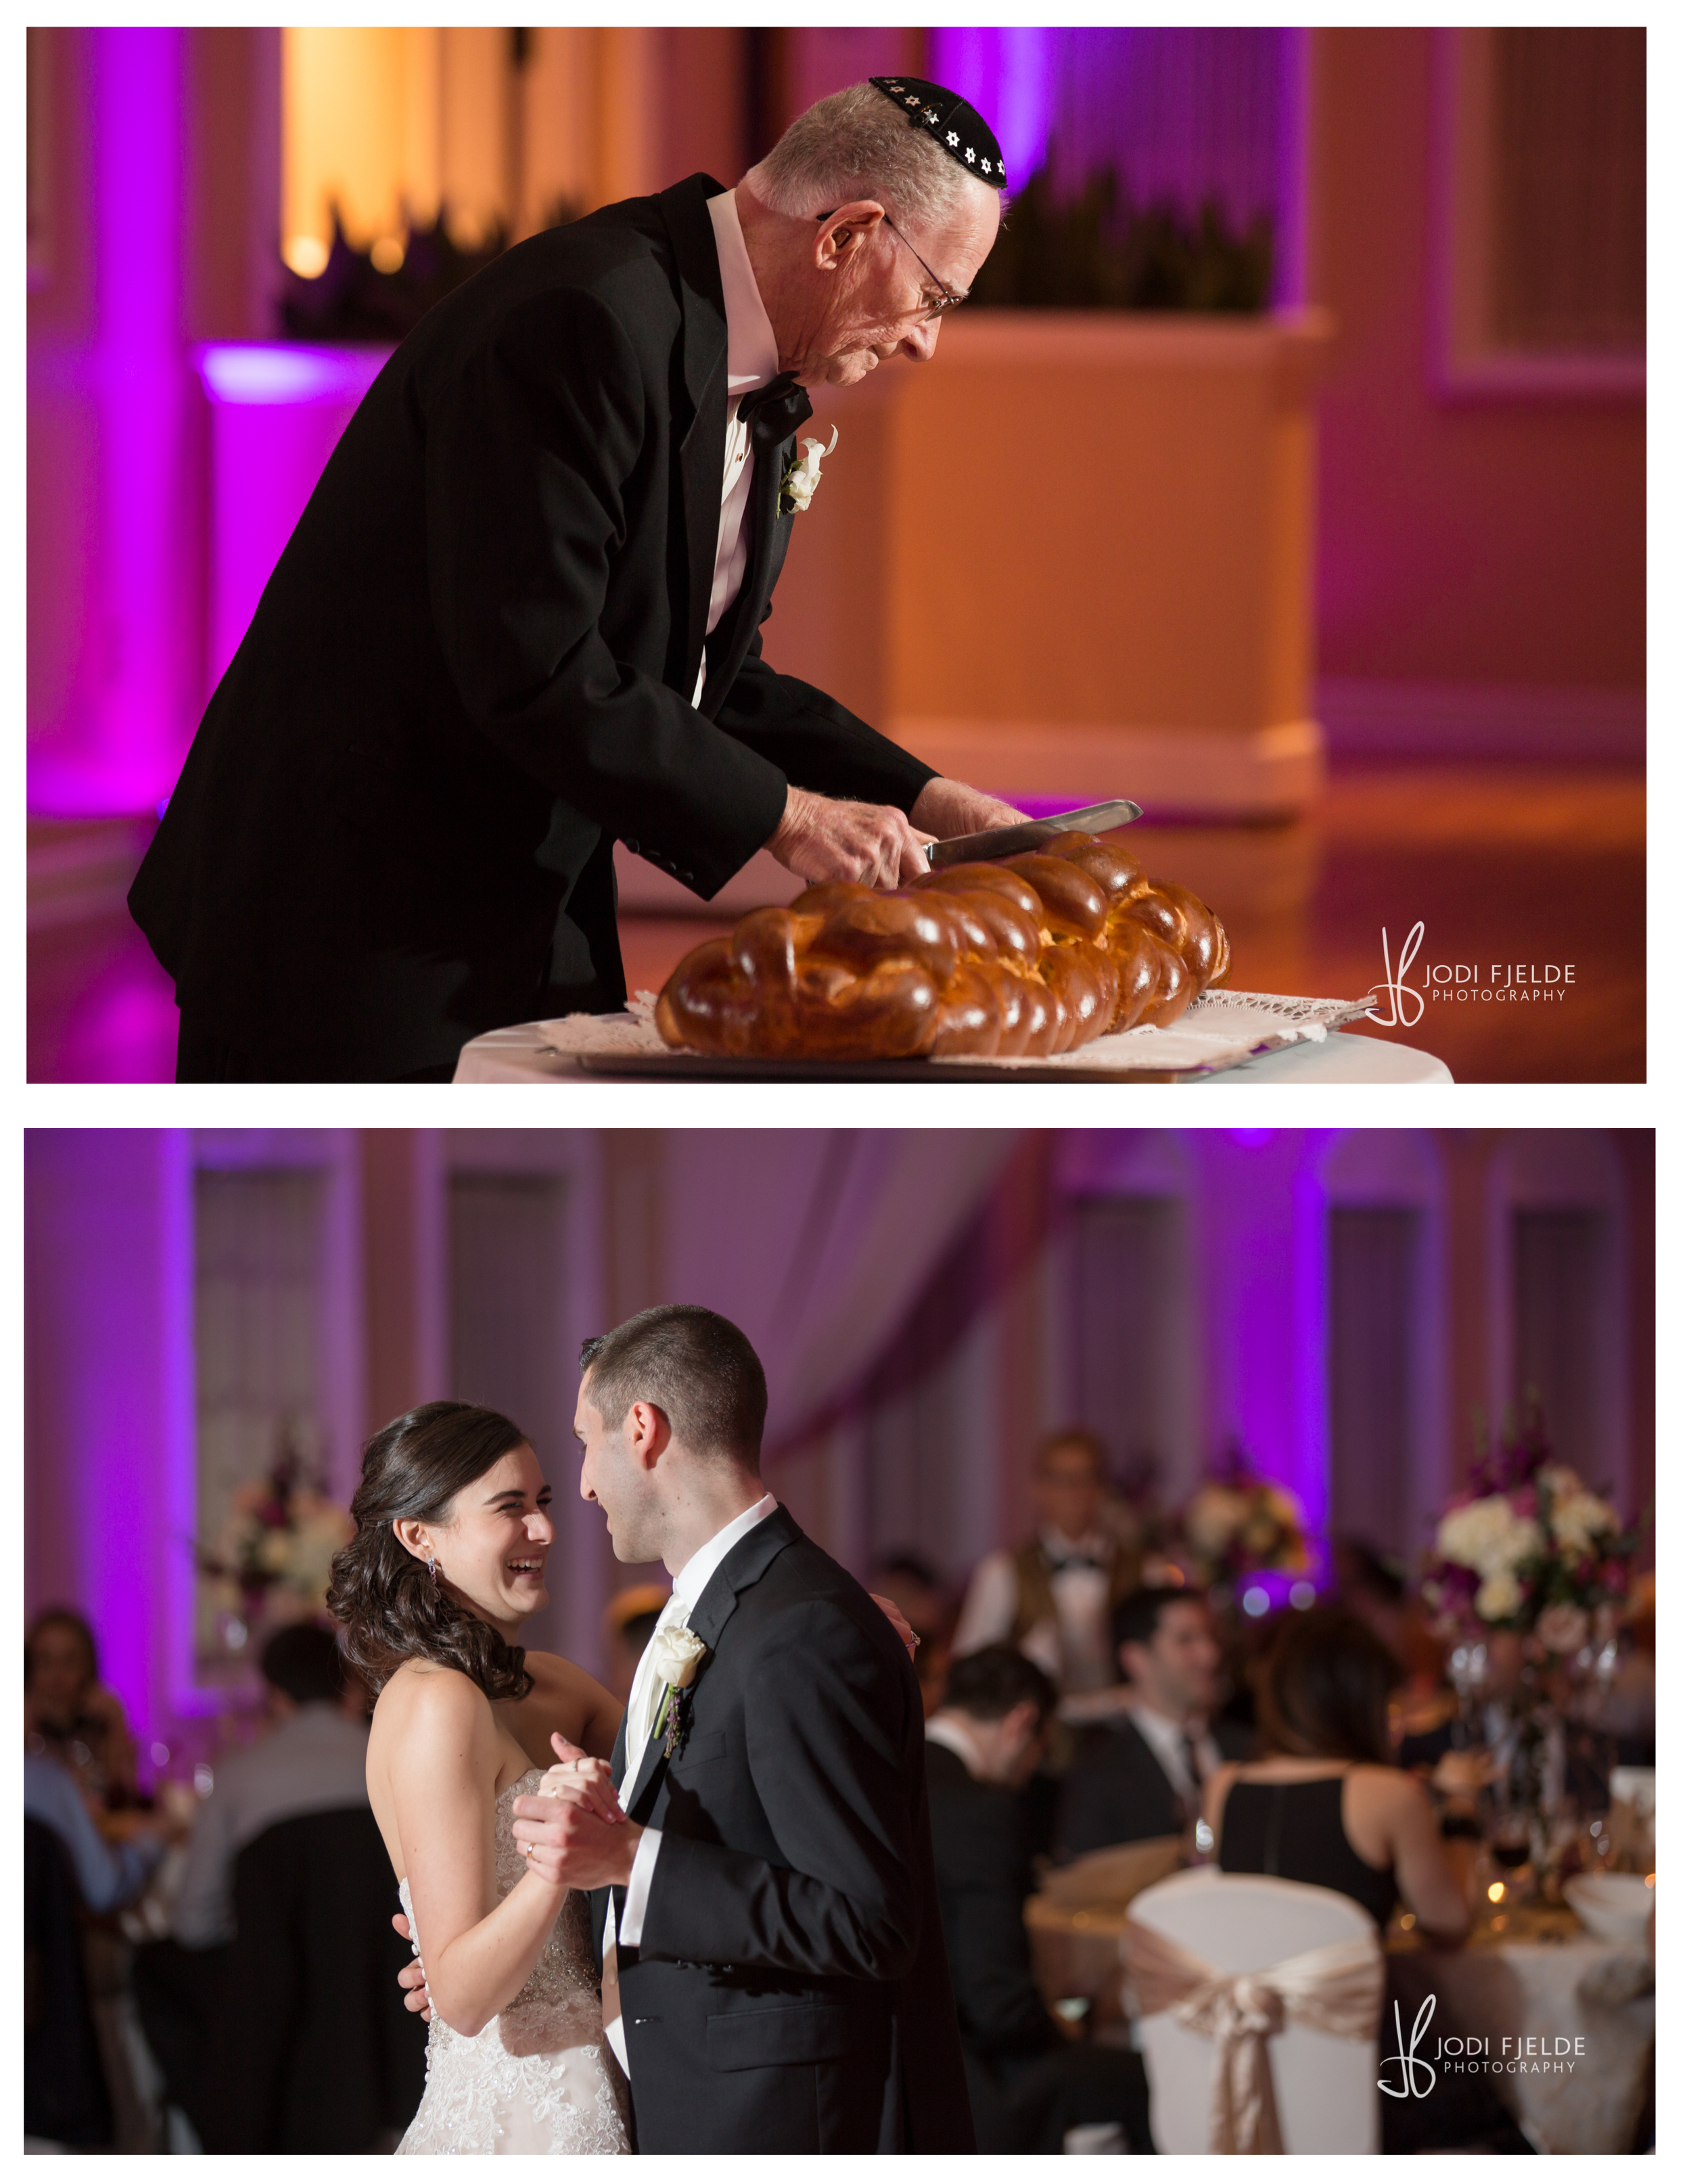 Benvenuto_Palm_Beach_Wedding_Jewish_Michelle & Jason_Jodi_Fjedle_Photography 59.jpg